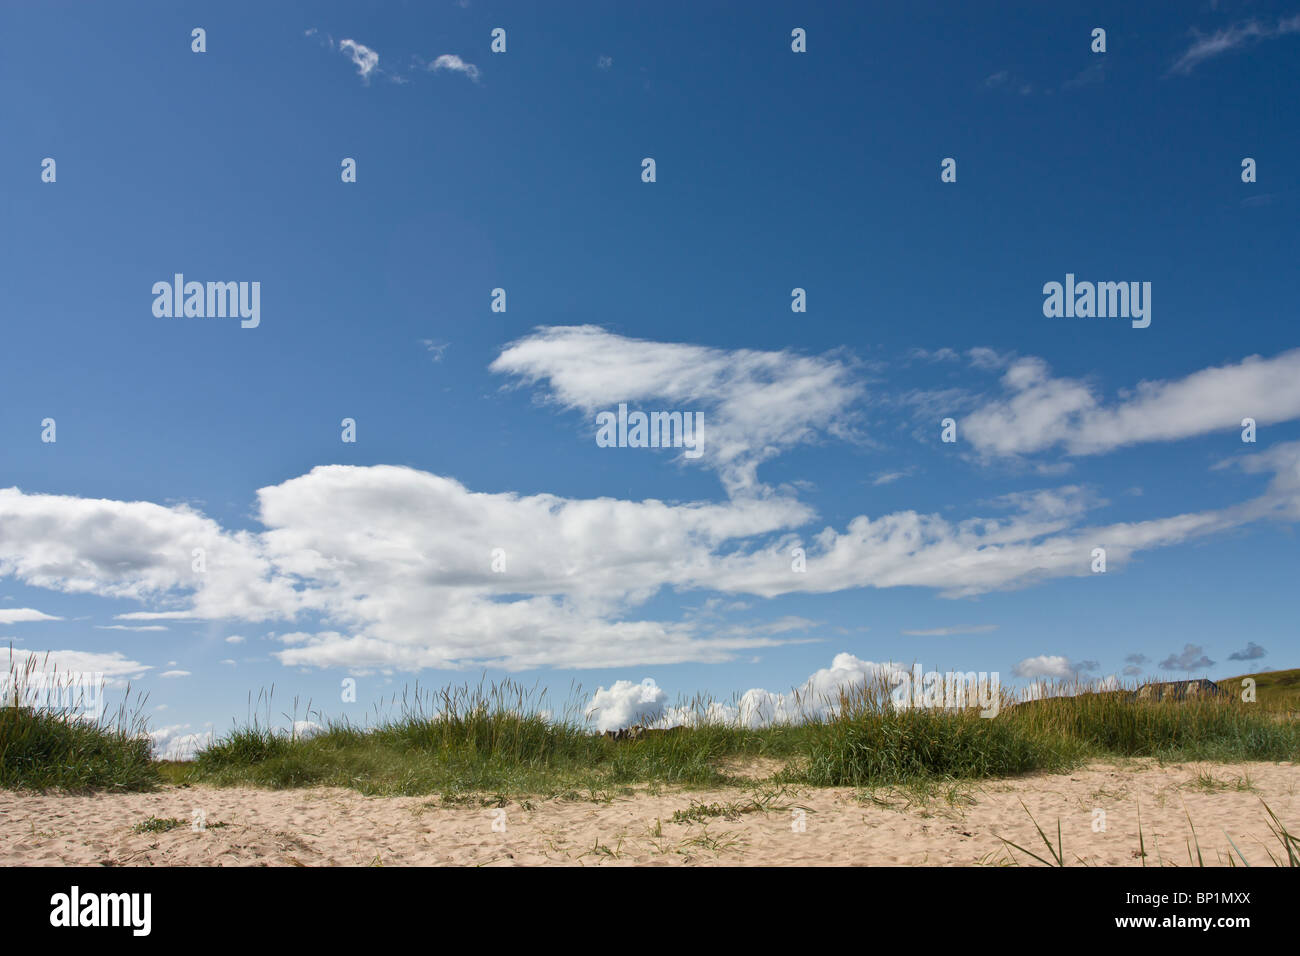 Sky background of vivid blue sky and white fluffy clouds. - Stock Image